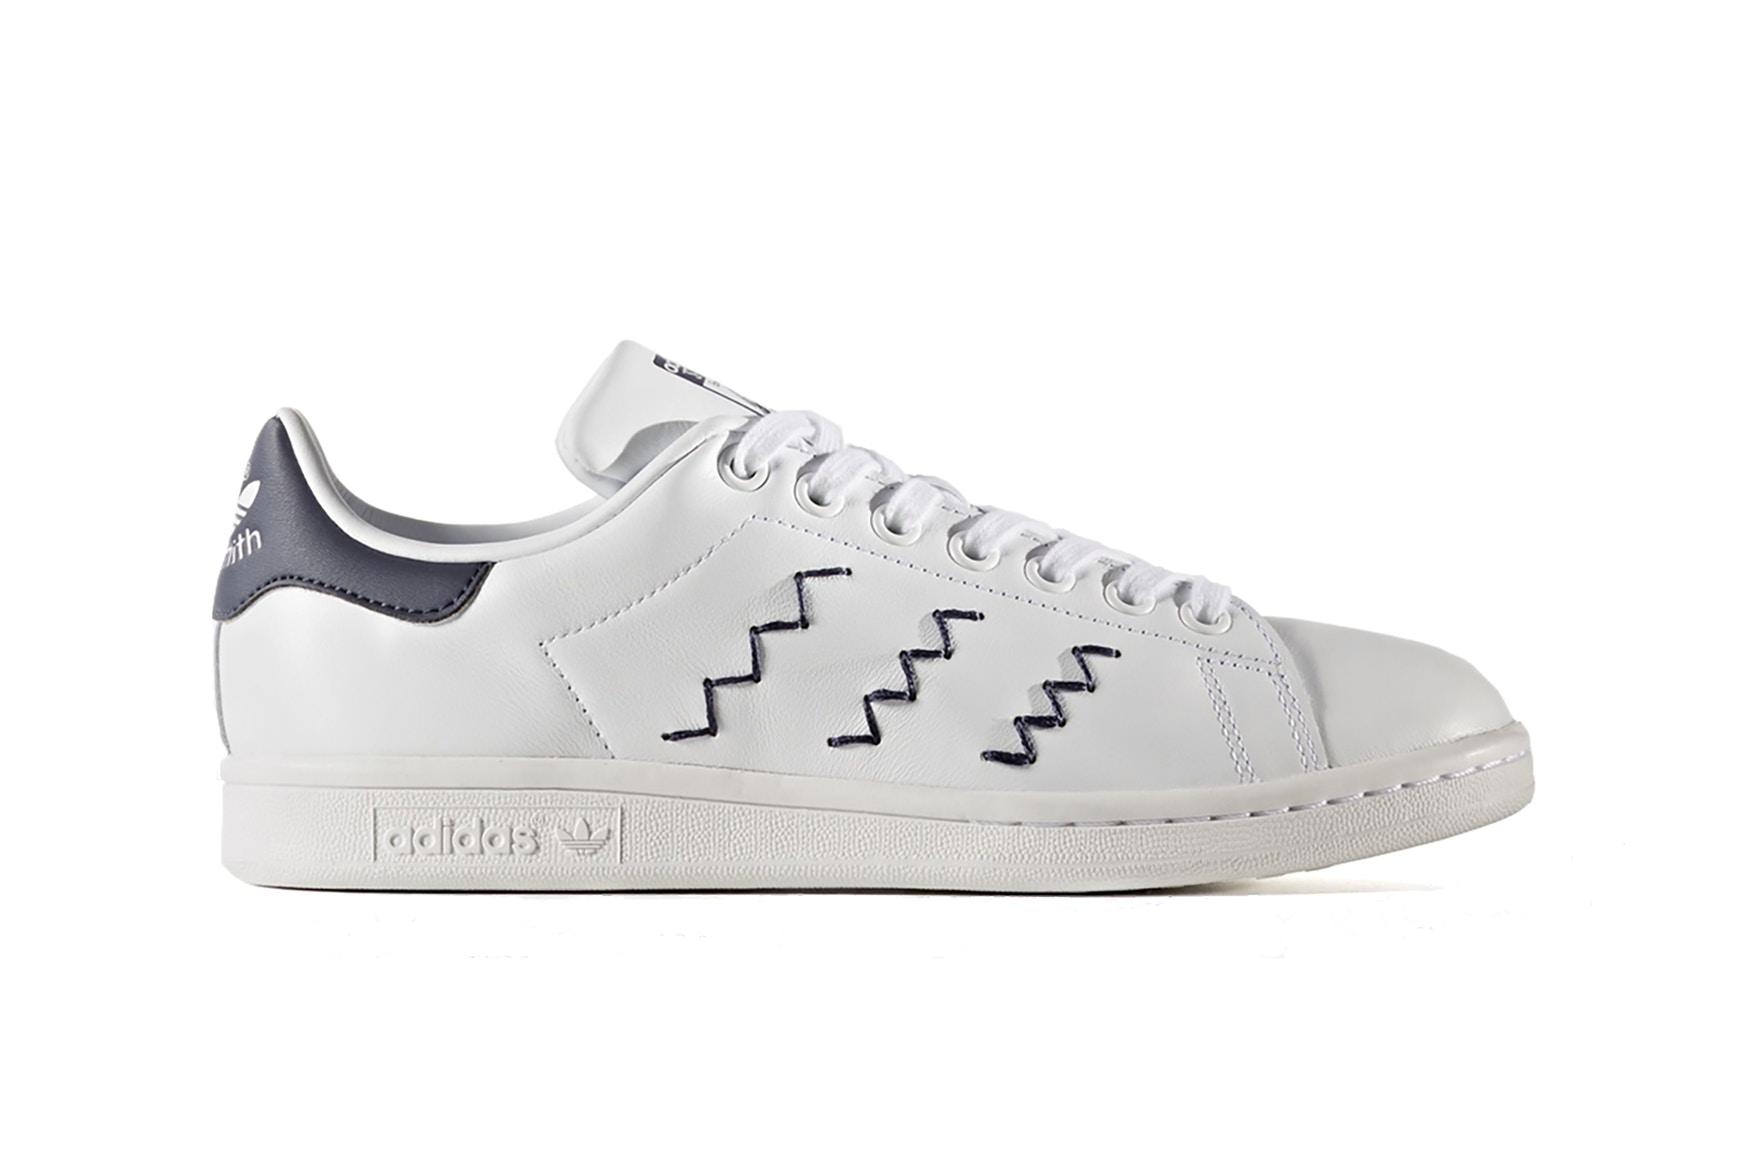 adidas Originals gives the Stan Smith a zigzag update